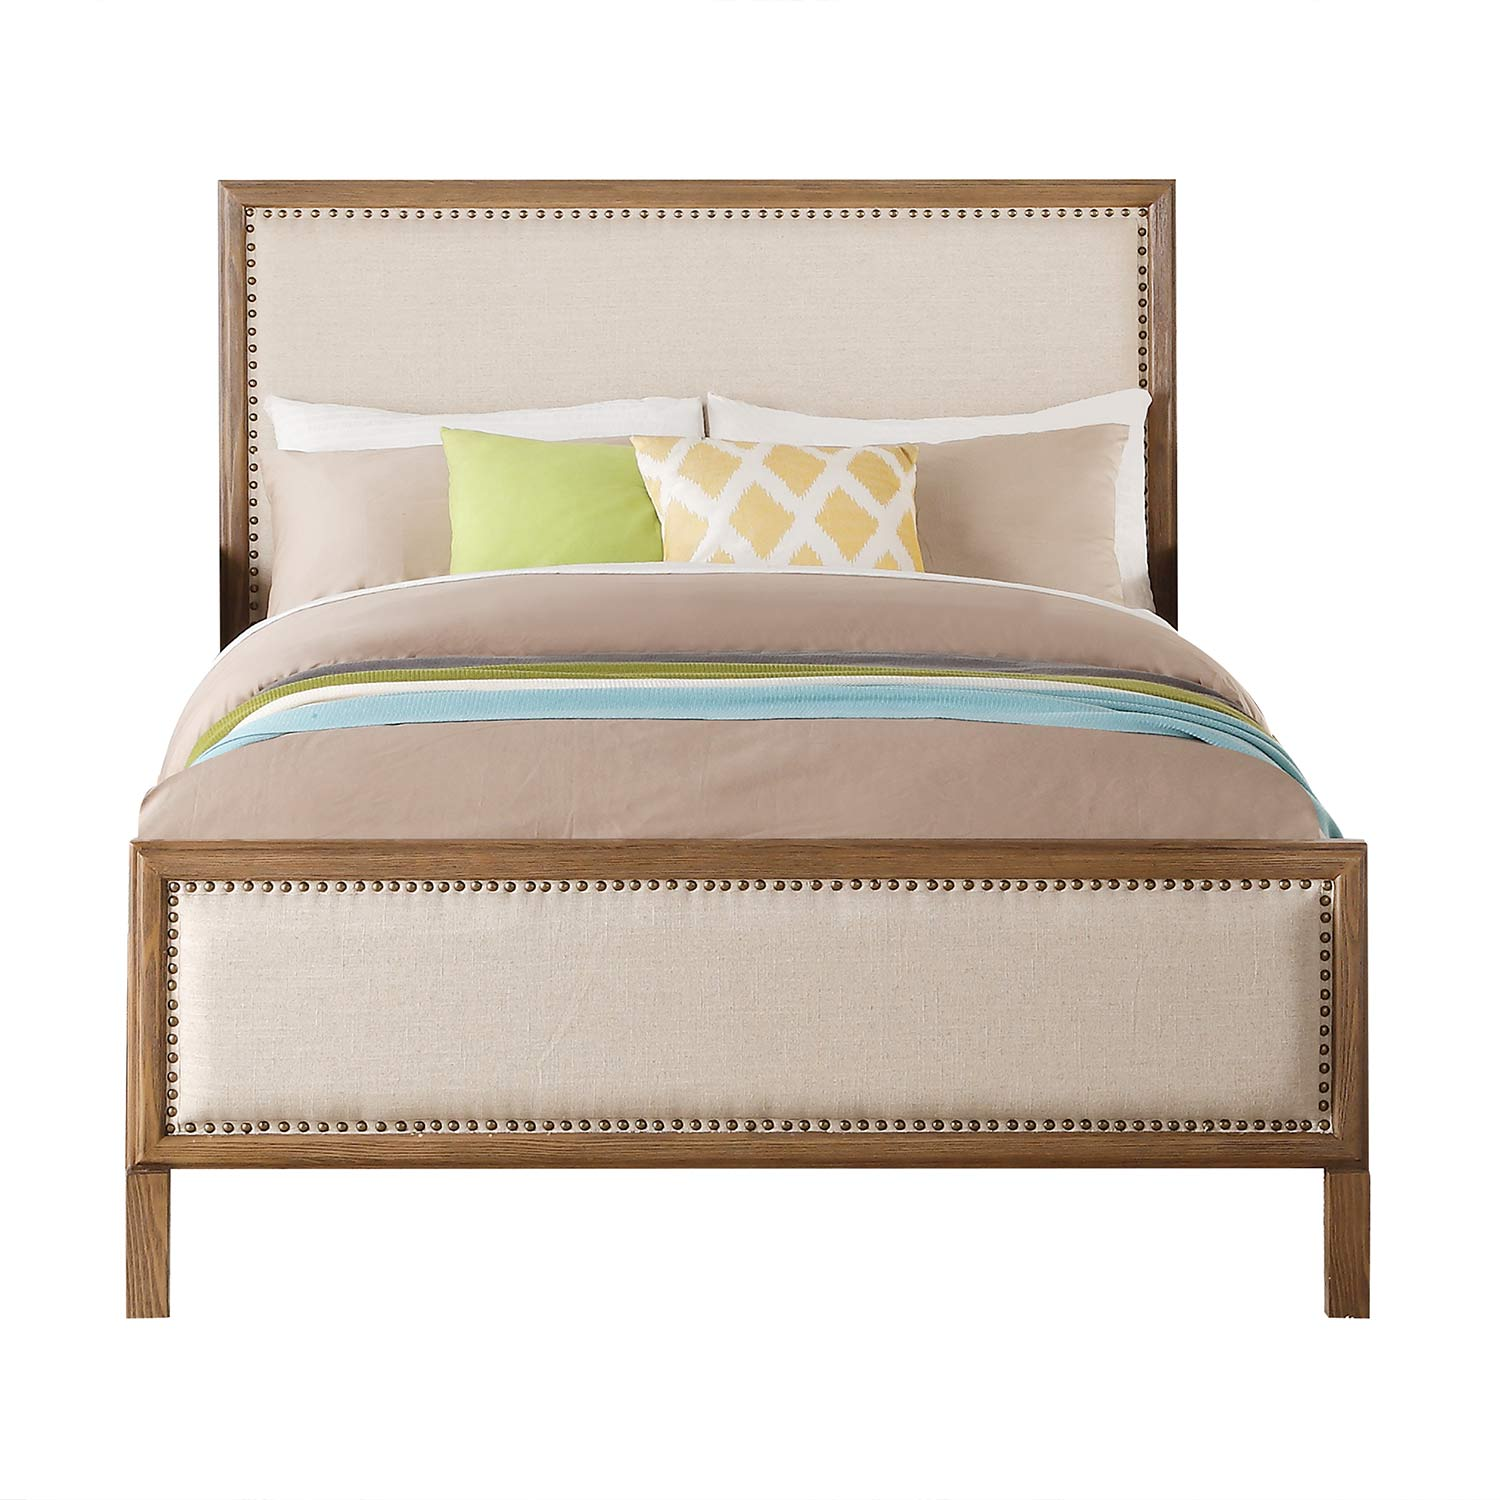 Acme Inverness Bed - Beige Linen/Reclaimed Oak